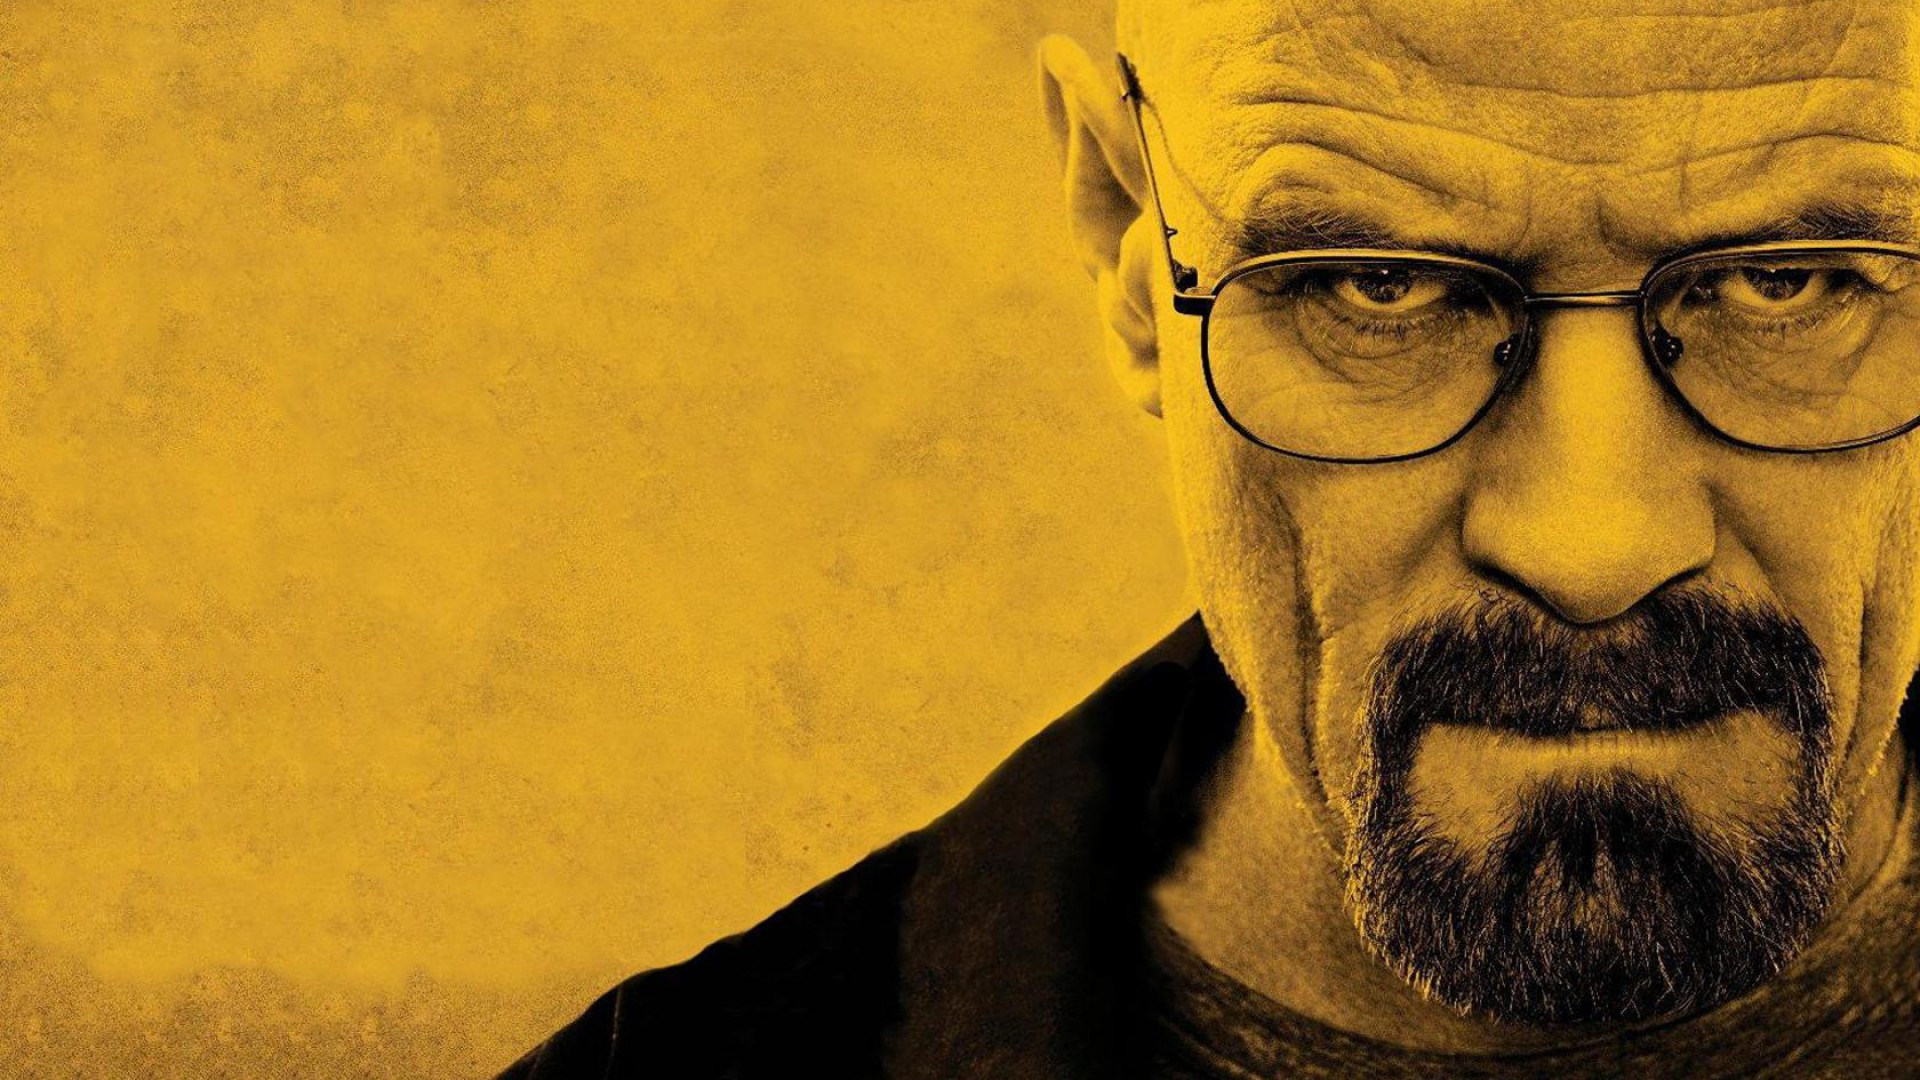 Image Breaking Bad Walter White Wallpaperjpg Treasure Quest